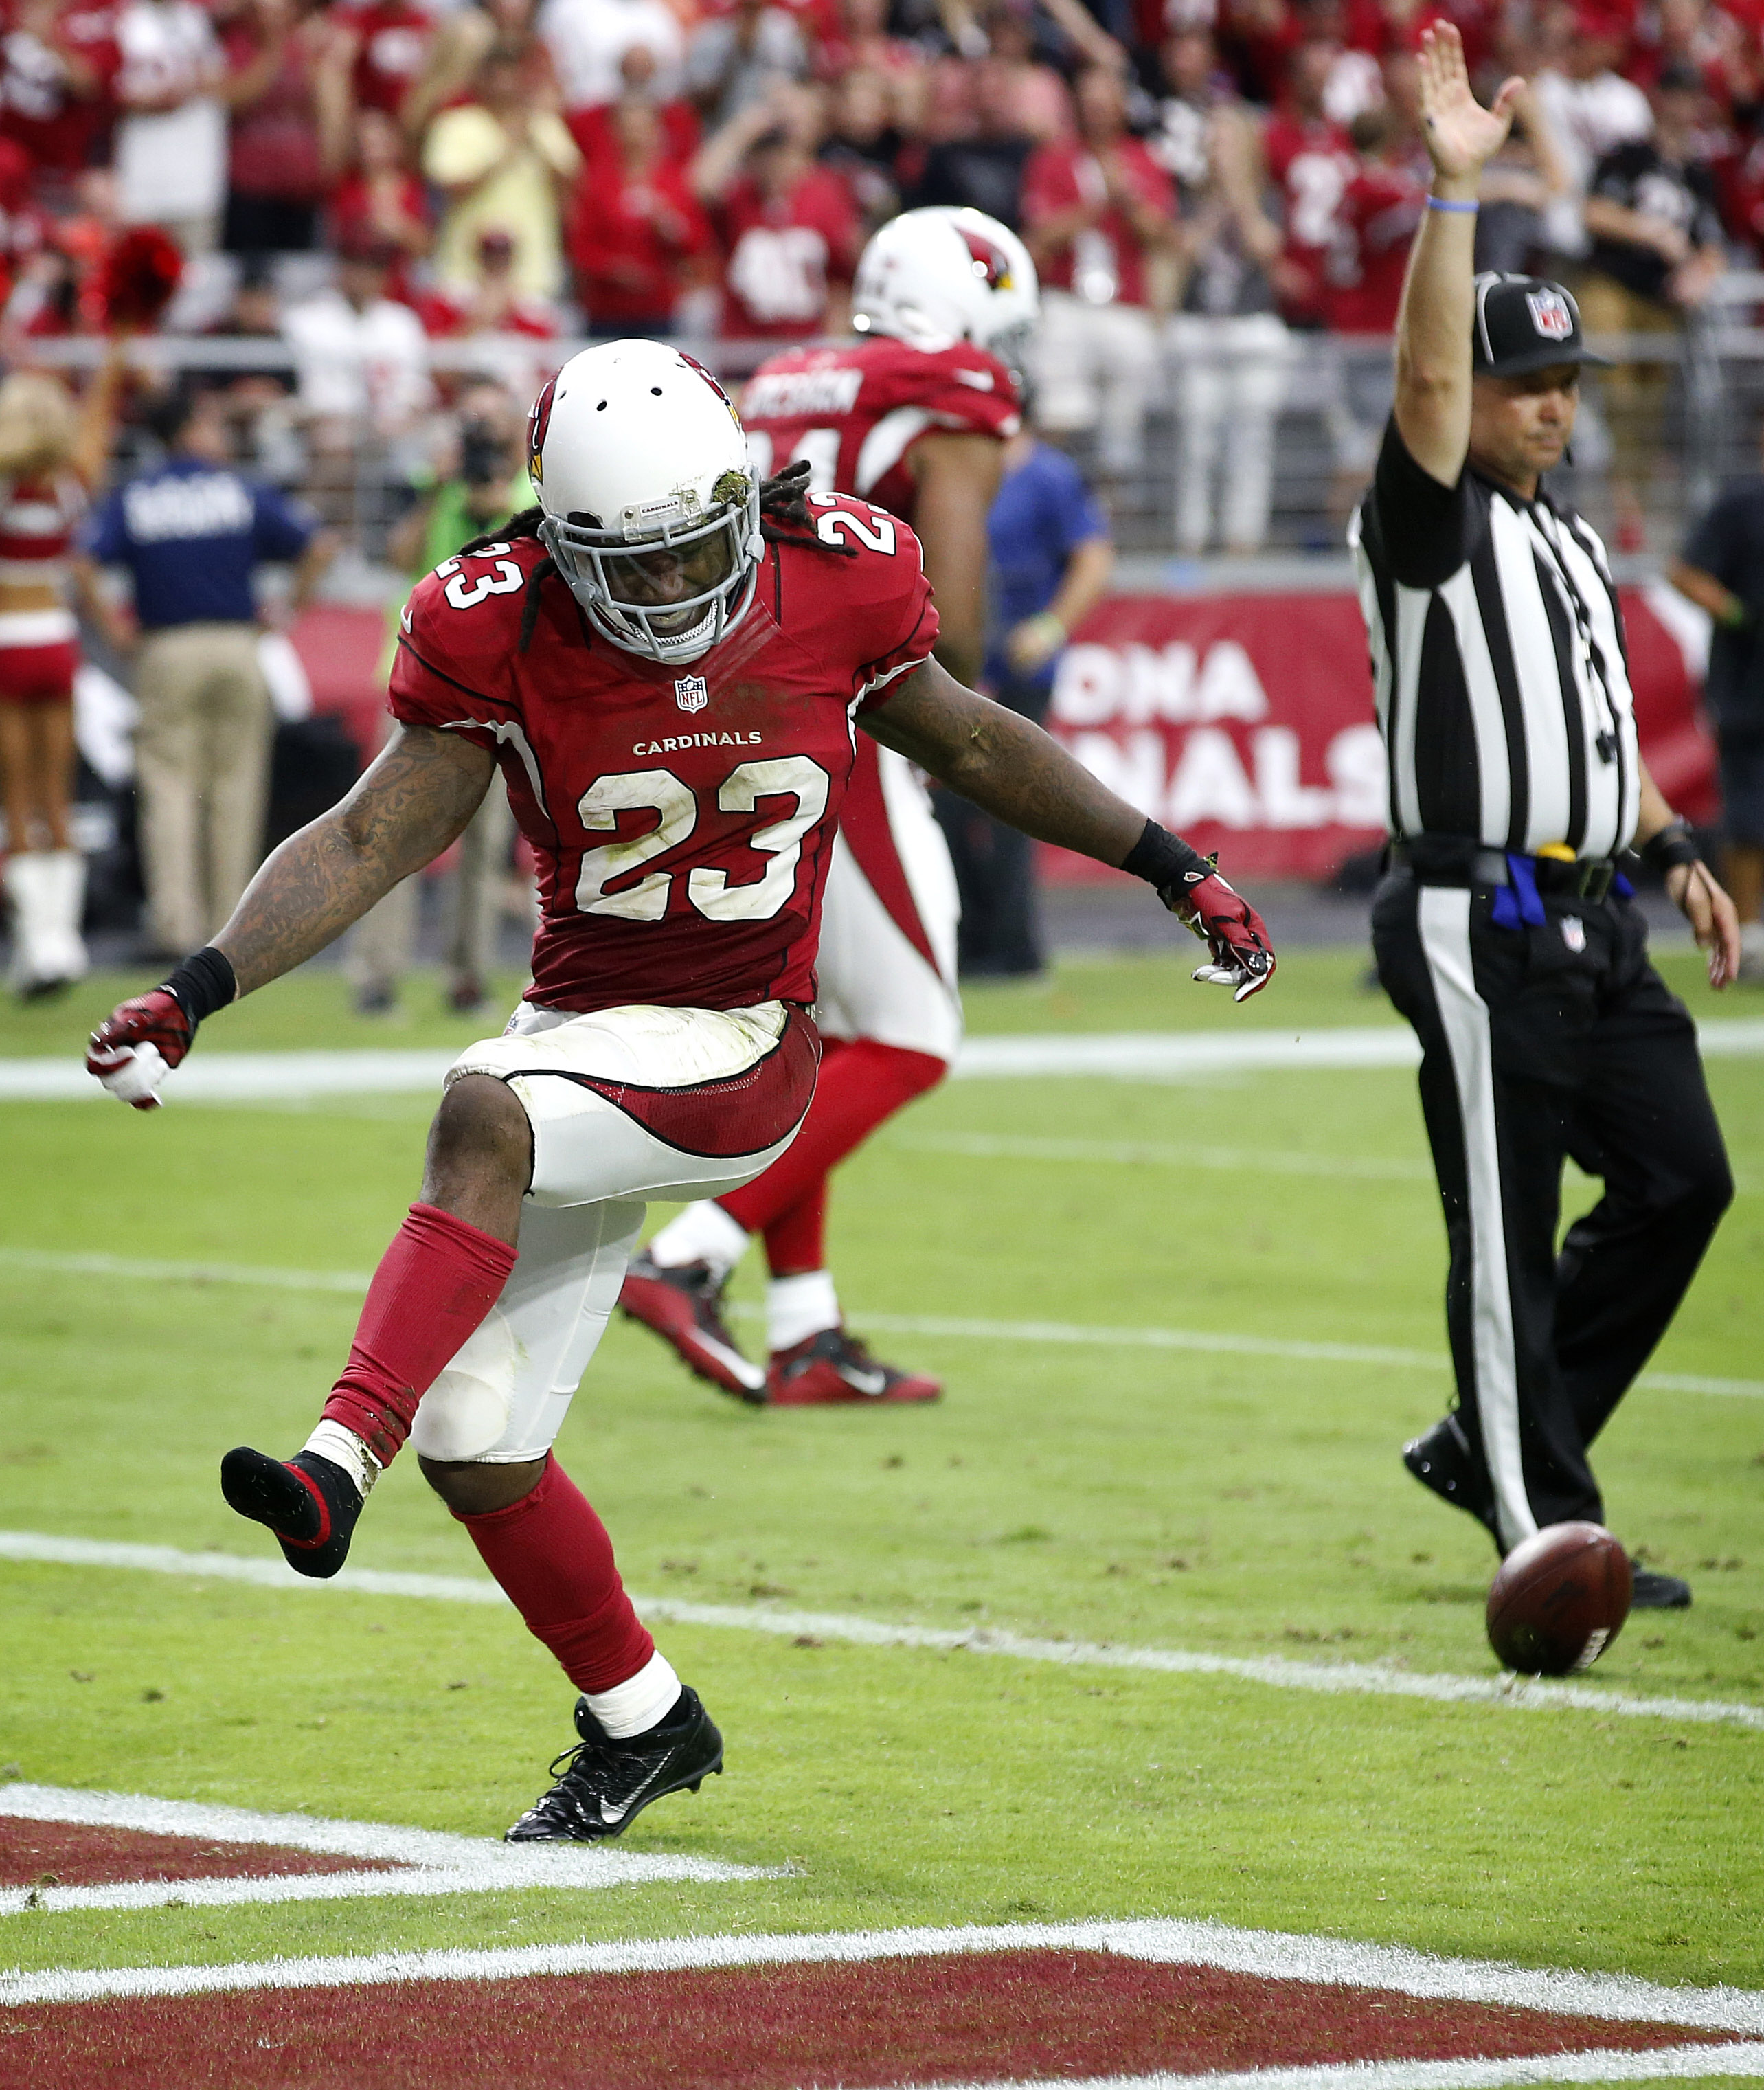 Arizona Cardinals running back Chris Johnson (23) celebrates a run against the San Francisco 49ers during the second half of an NFL football game, Sunday, Sept. 27, 2015, in Glendale, Ariz.  (AP Photo/Ross D. Franklin)